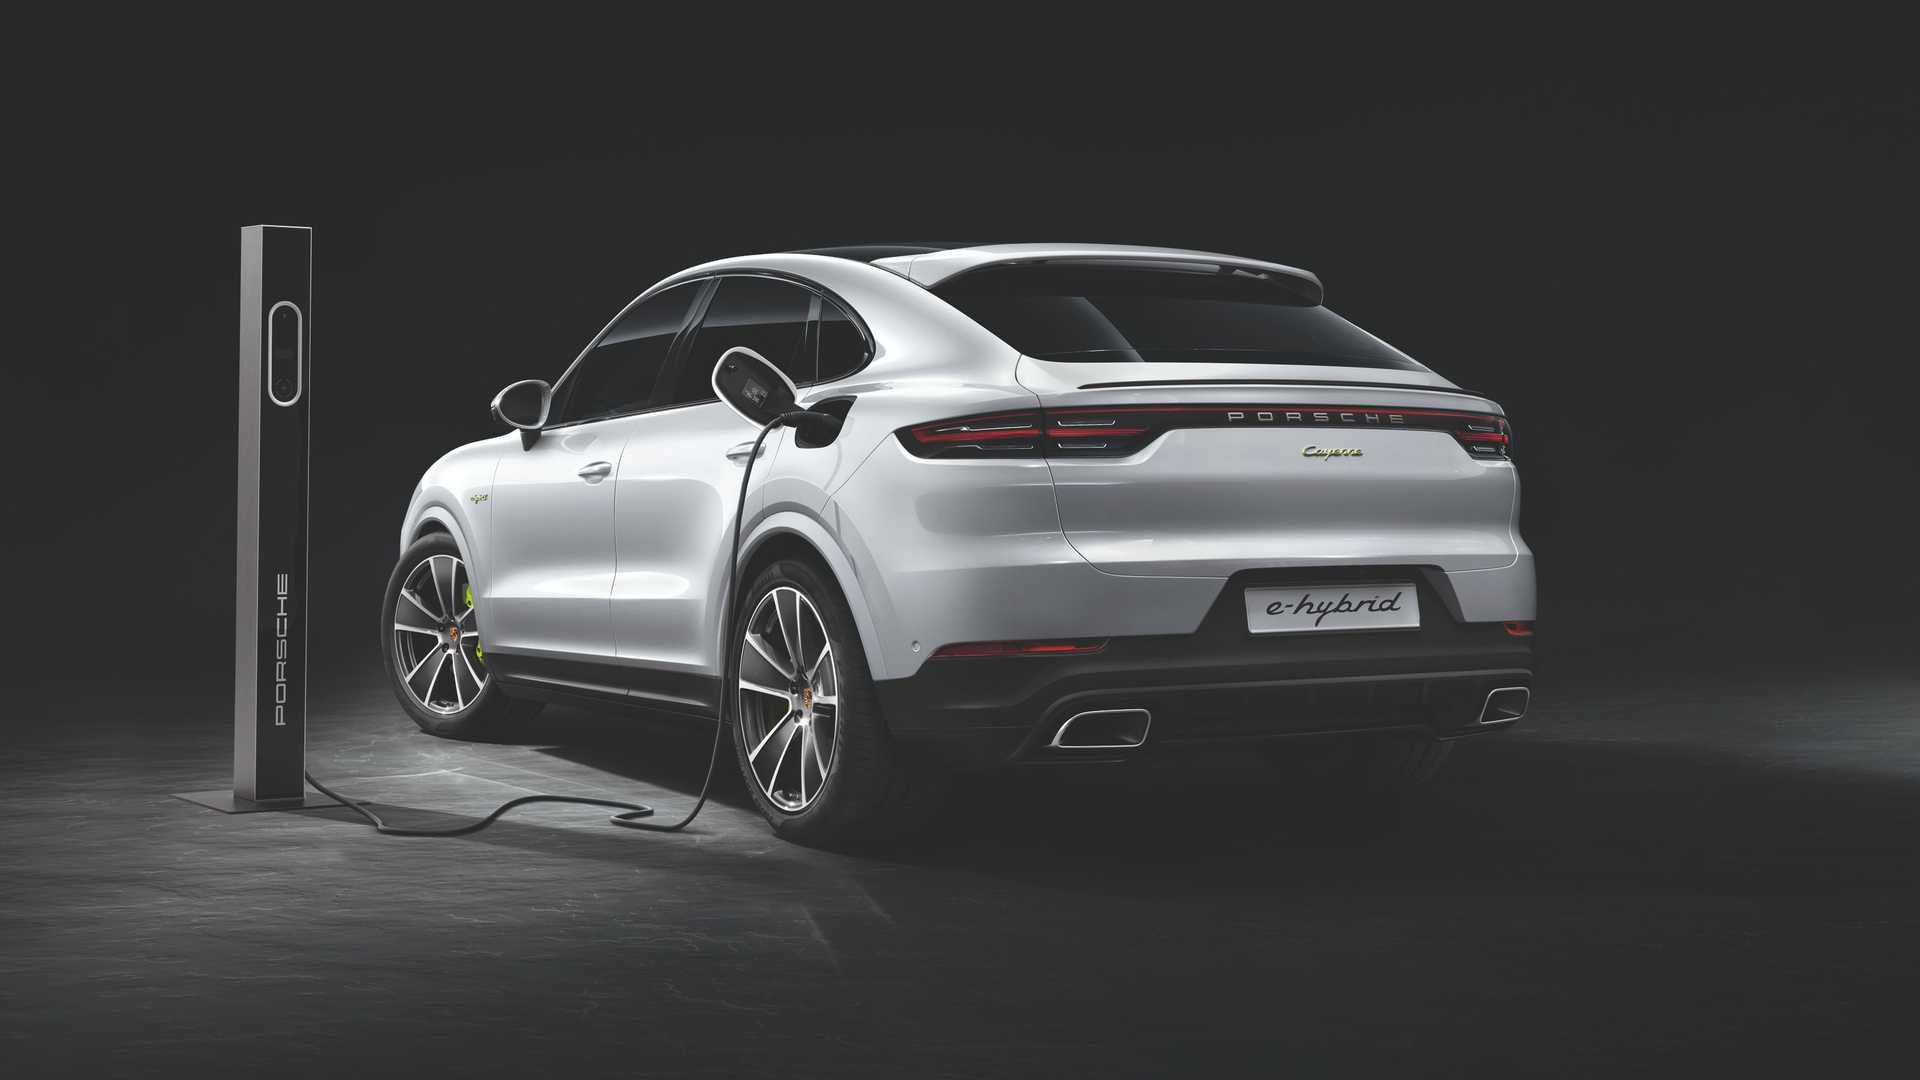 2020 Porsche Cayenne Turbo S E Hybrid Coupe Turbo S E Hybrid And Coupe E Hybrid Insideevs Photos